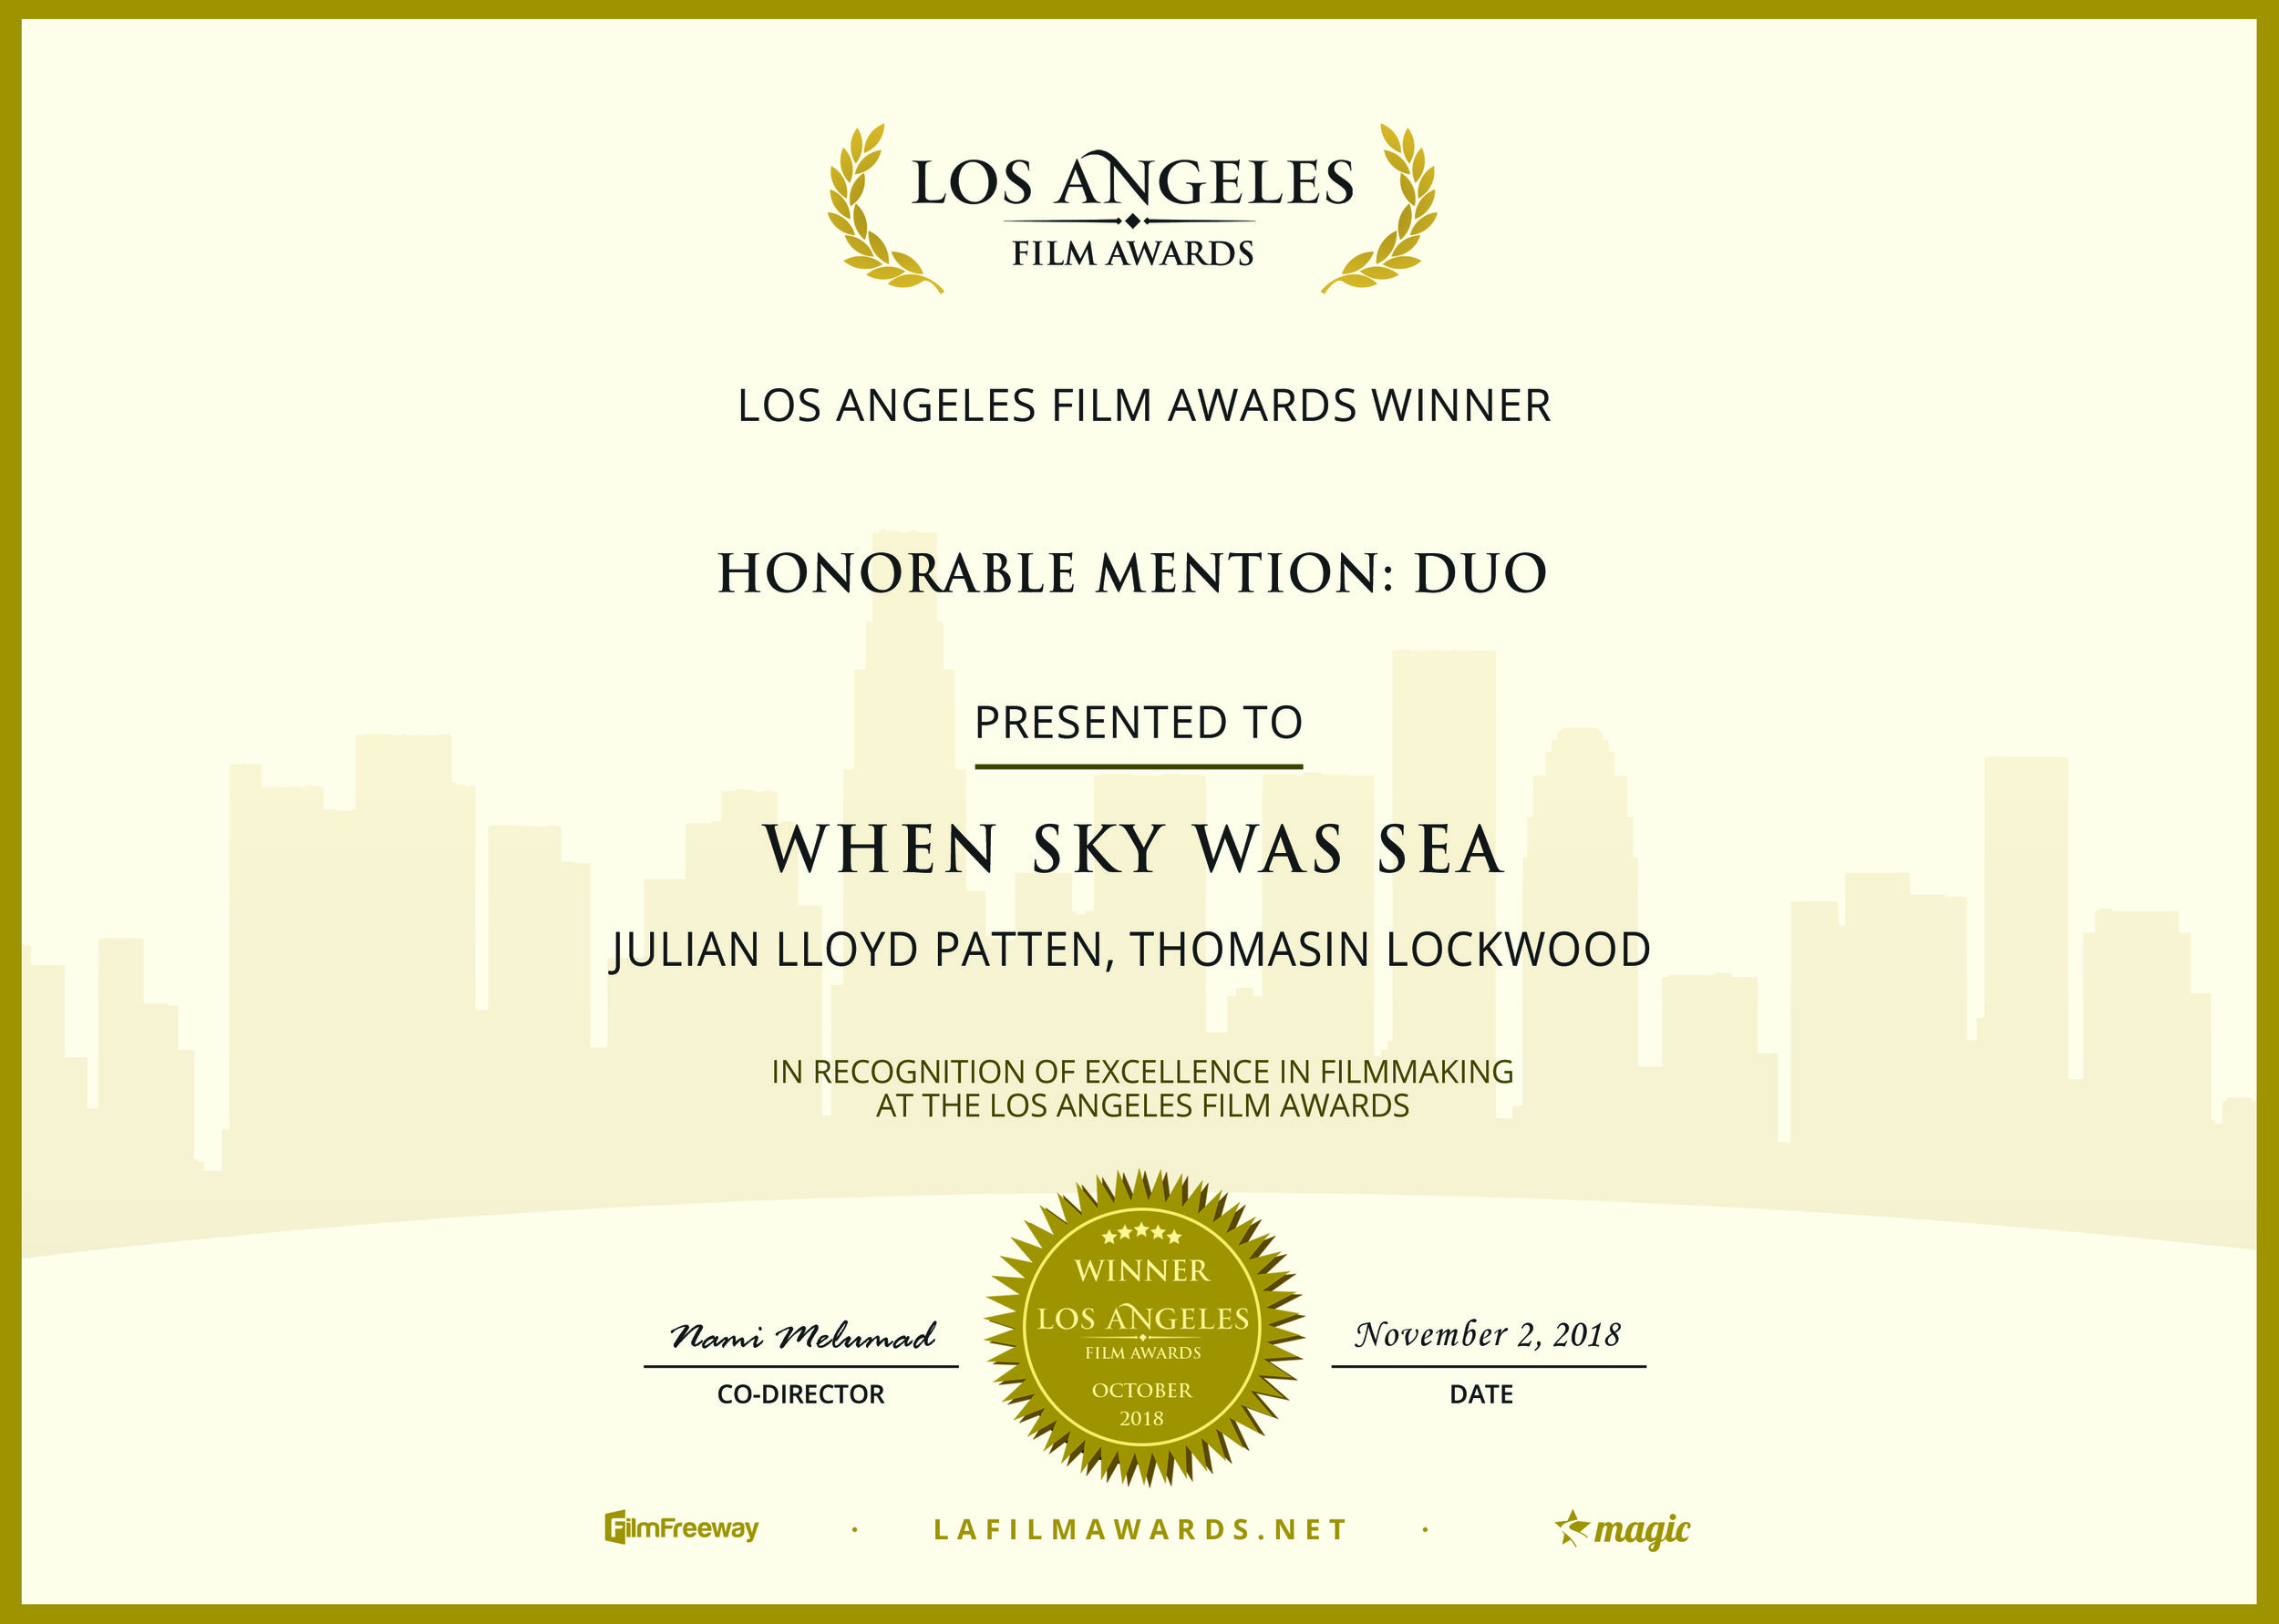 Los Angeles Film Awards (2018) - Best Duo in a Short Film (Honorable Mention)